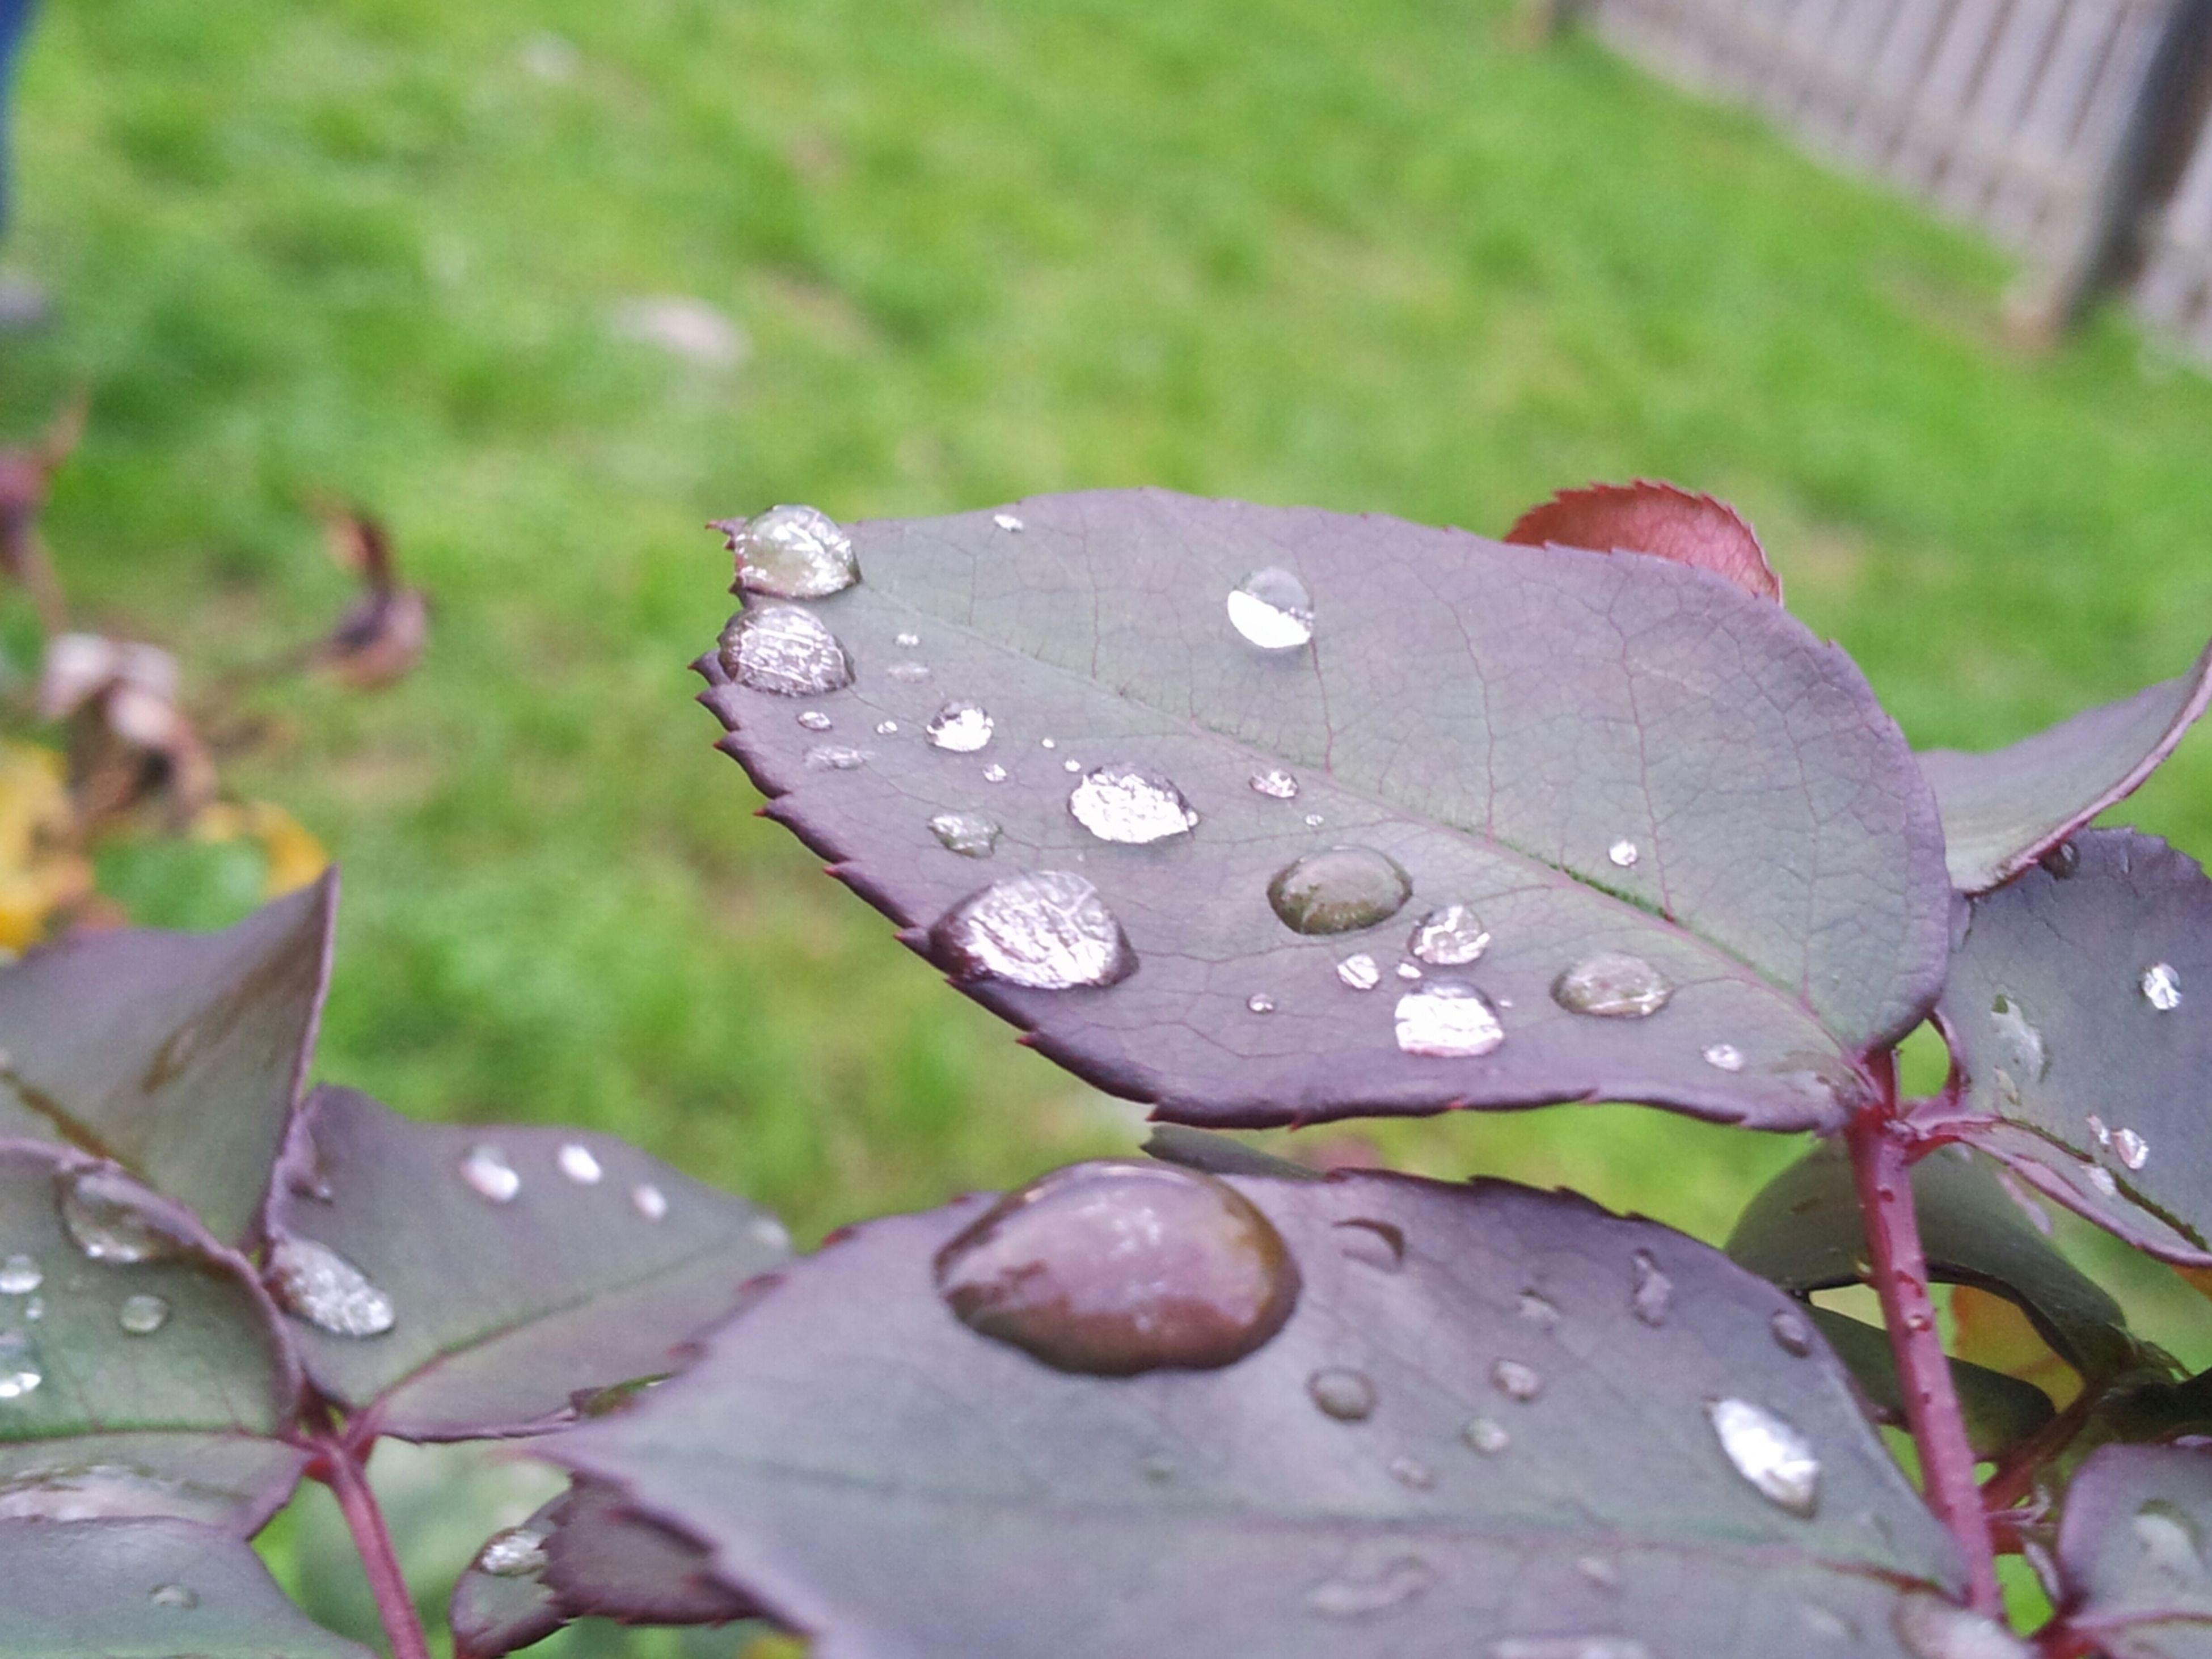 drop, leaf, water, wet, freshness, growth, close-up, fragility, beauty in nature, nature, plant, focus on foreground, flower, dew, raindrop, green color, season, petal, selective focus, rain